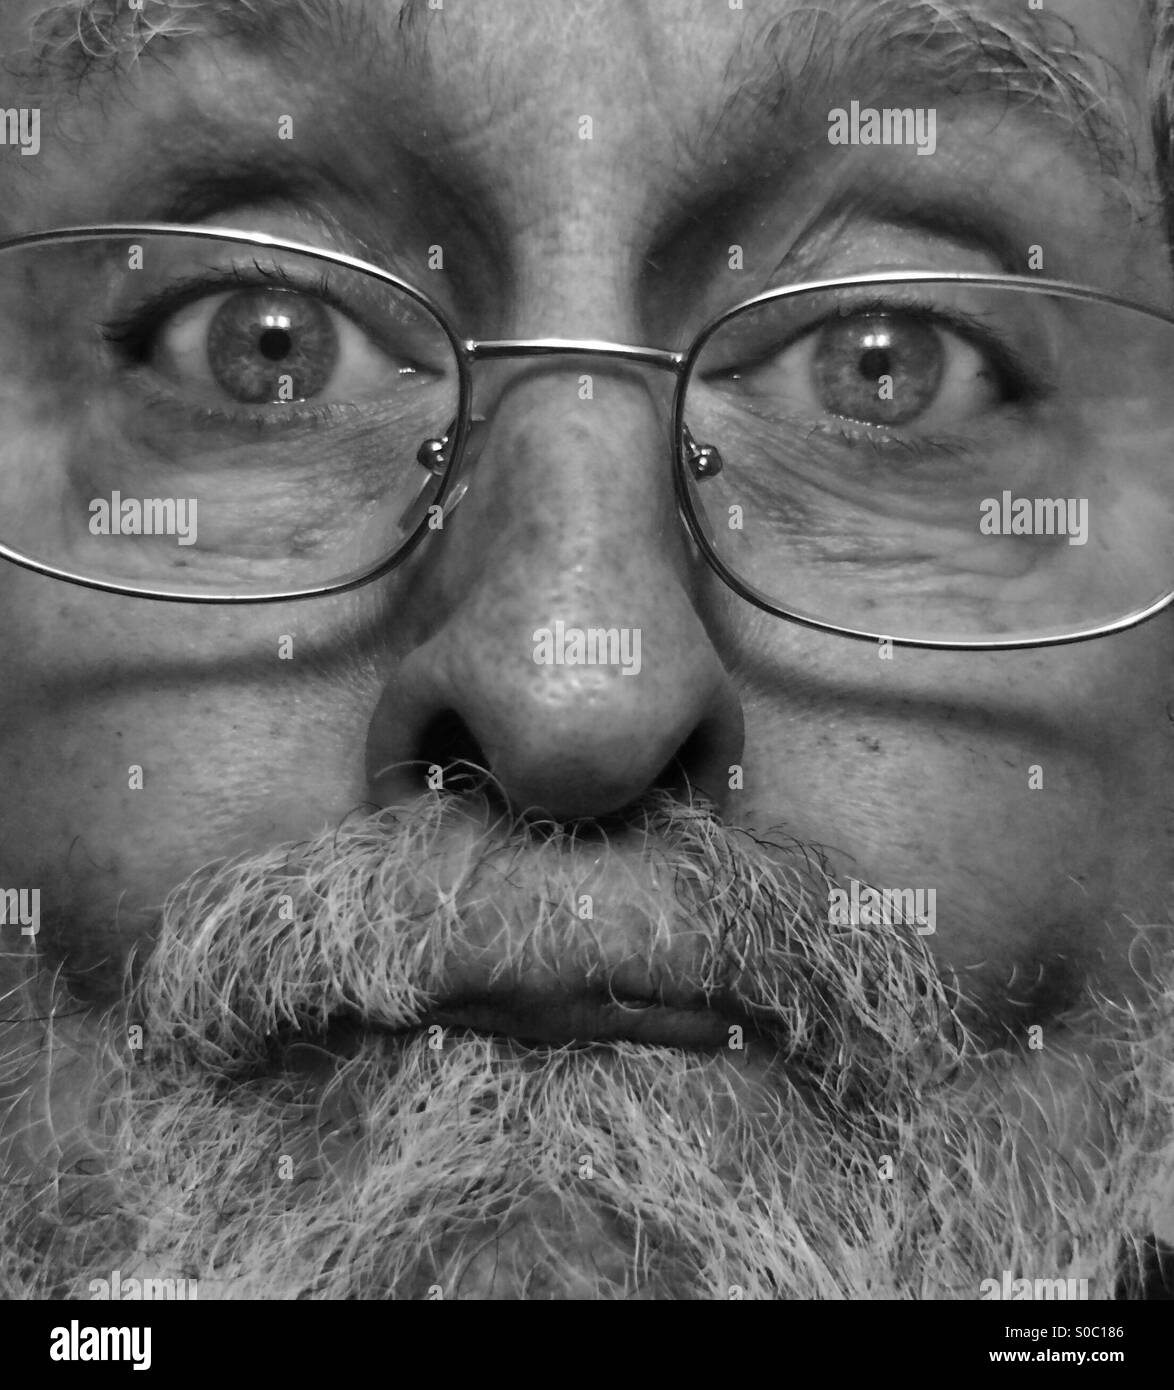 White male, age 64, close-up of bearded, aging face, Model Released, black and white - Stock Image